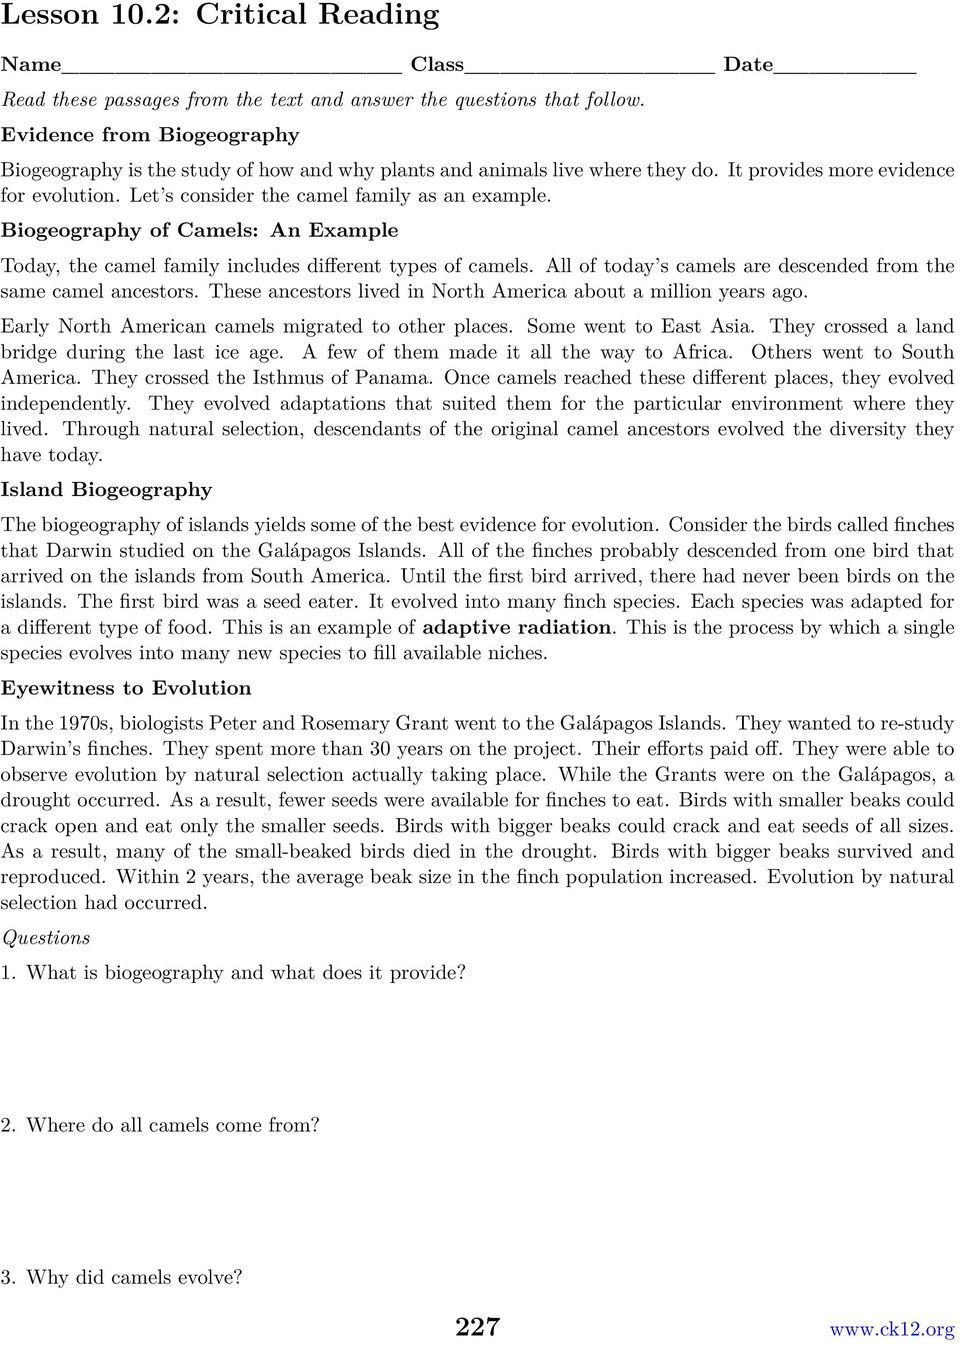 Chapter 10 The Theory Of Evolution Worksheets Opening Image